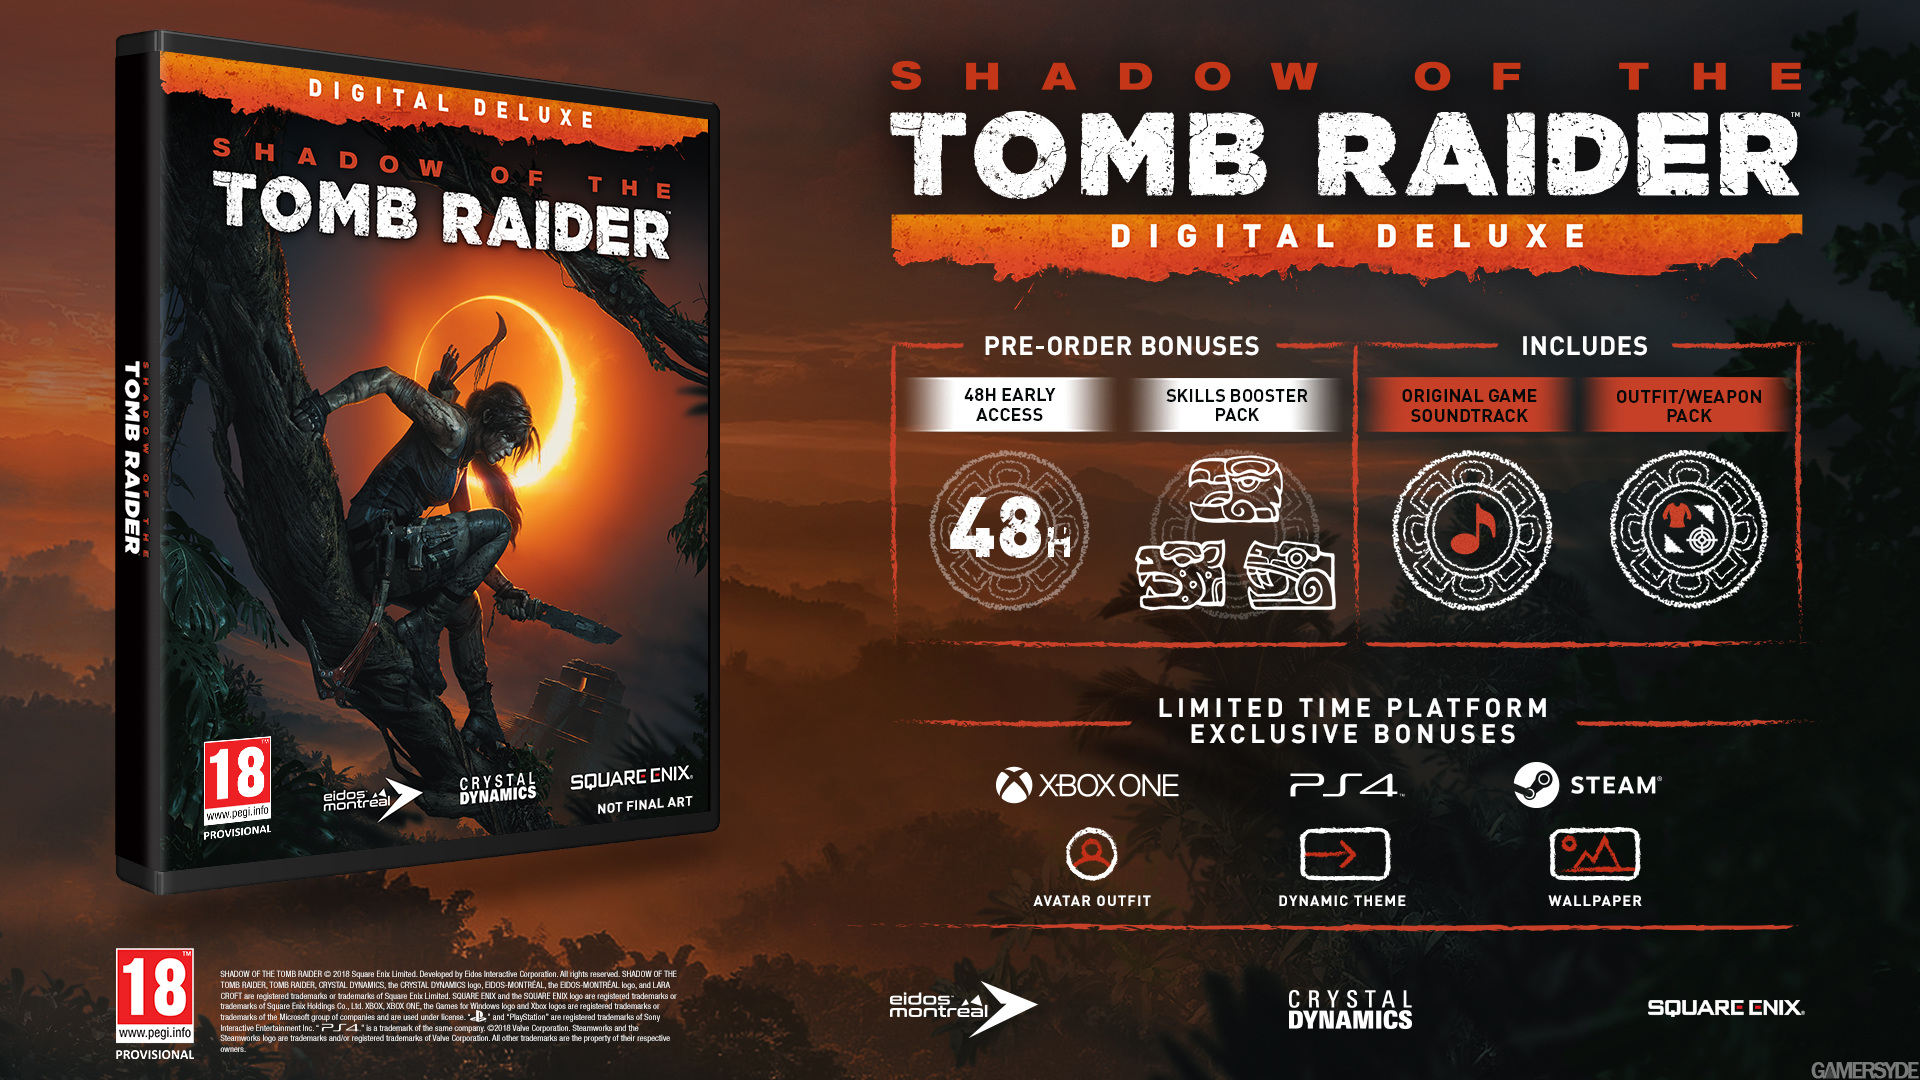 image_shadow_of_the_tomb_raider-38092-40